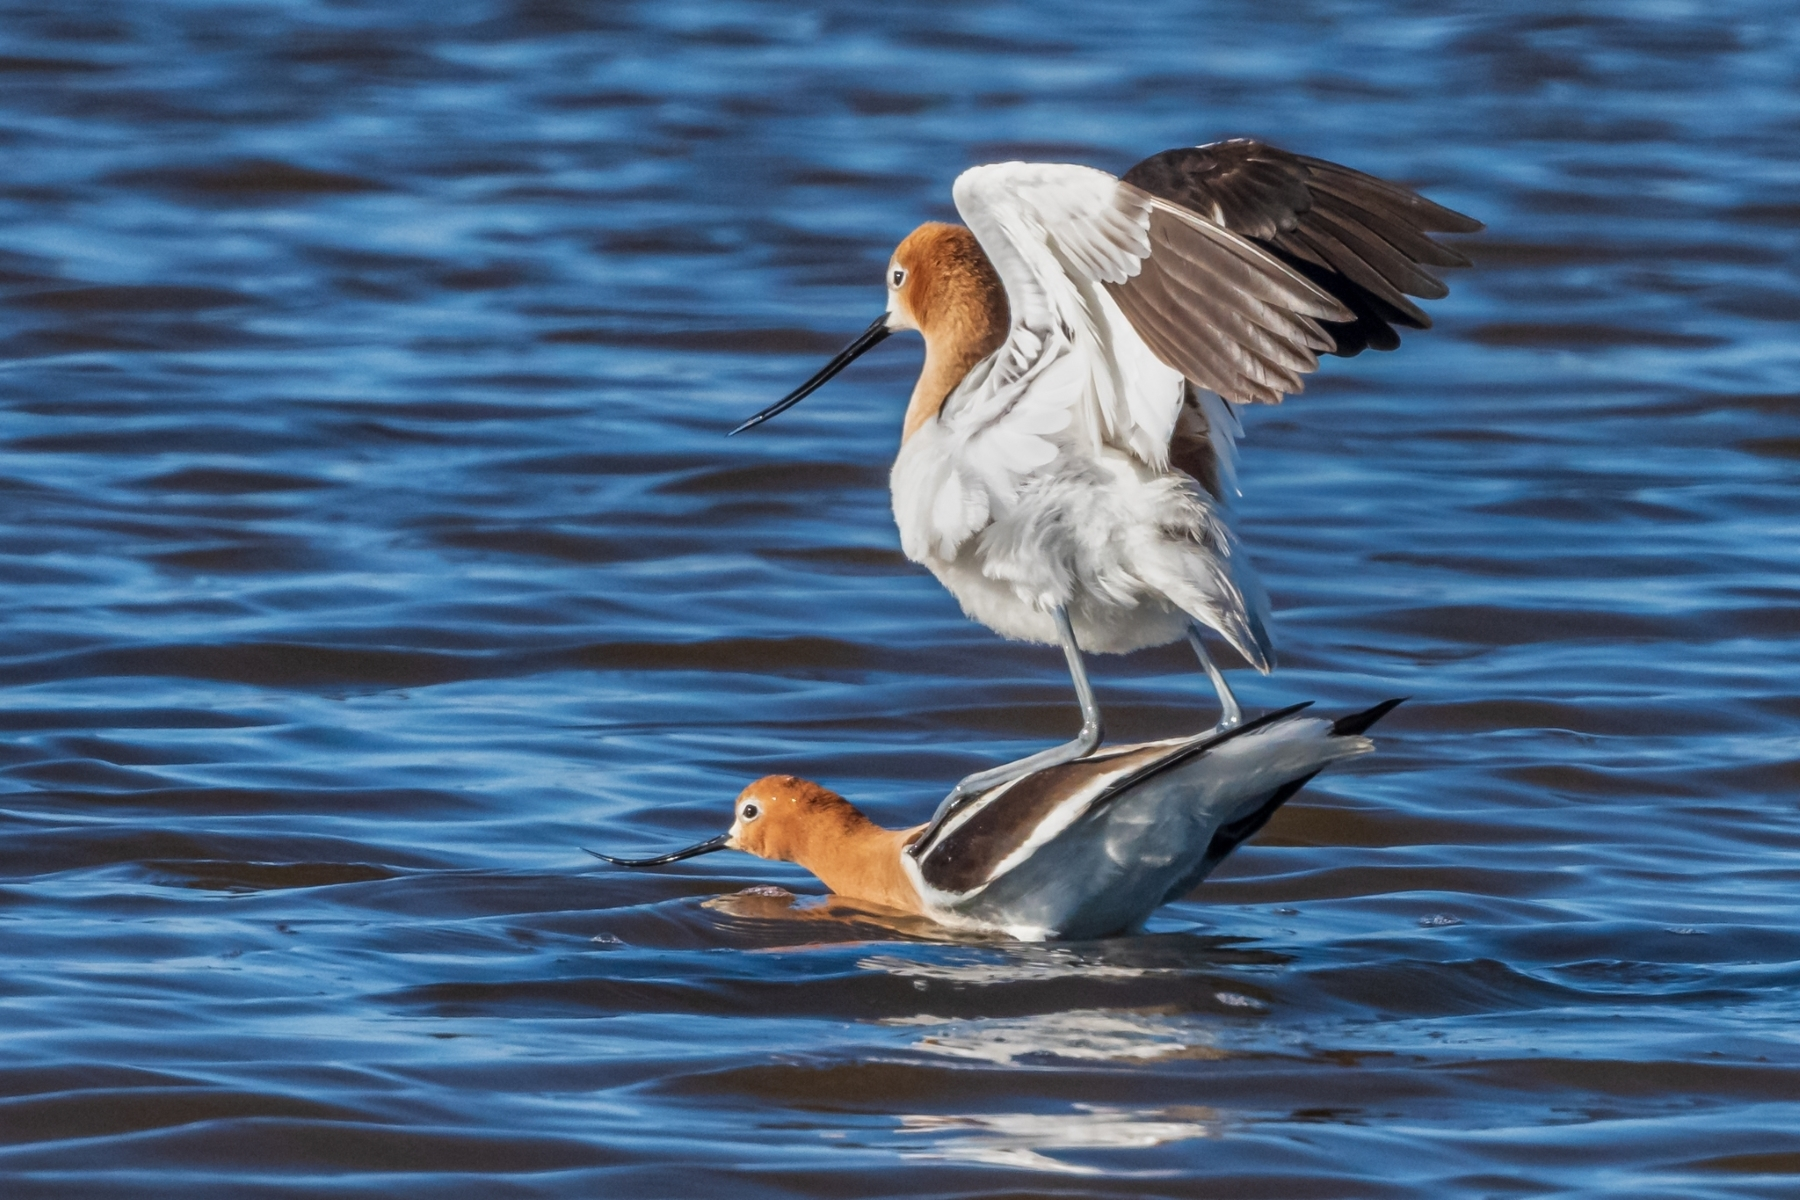 Mating-Avocets-2.Male-Avocet-mounts-the-female-and-rests-his-tarsometatarsi-on-her-back-to-stabilize.-NB-Place-by-Luke-Lang-SC